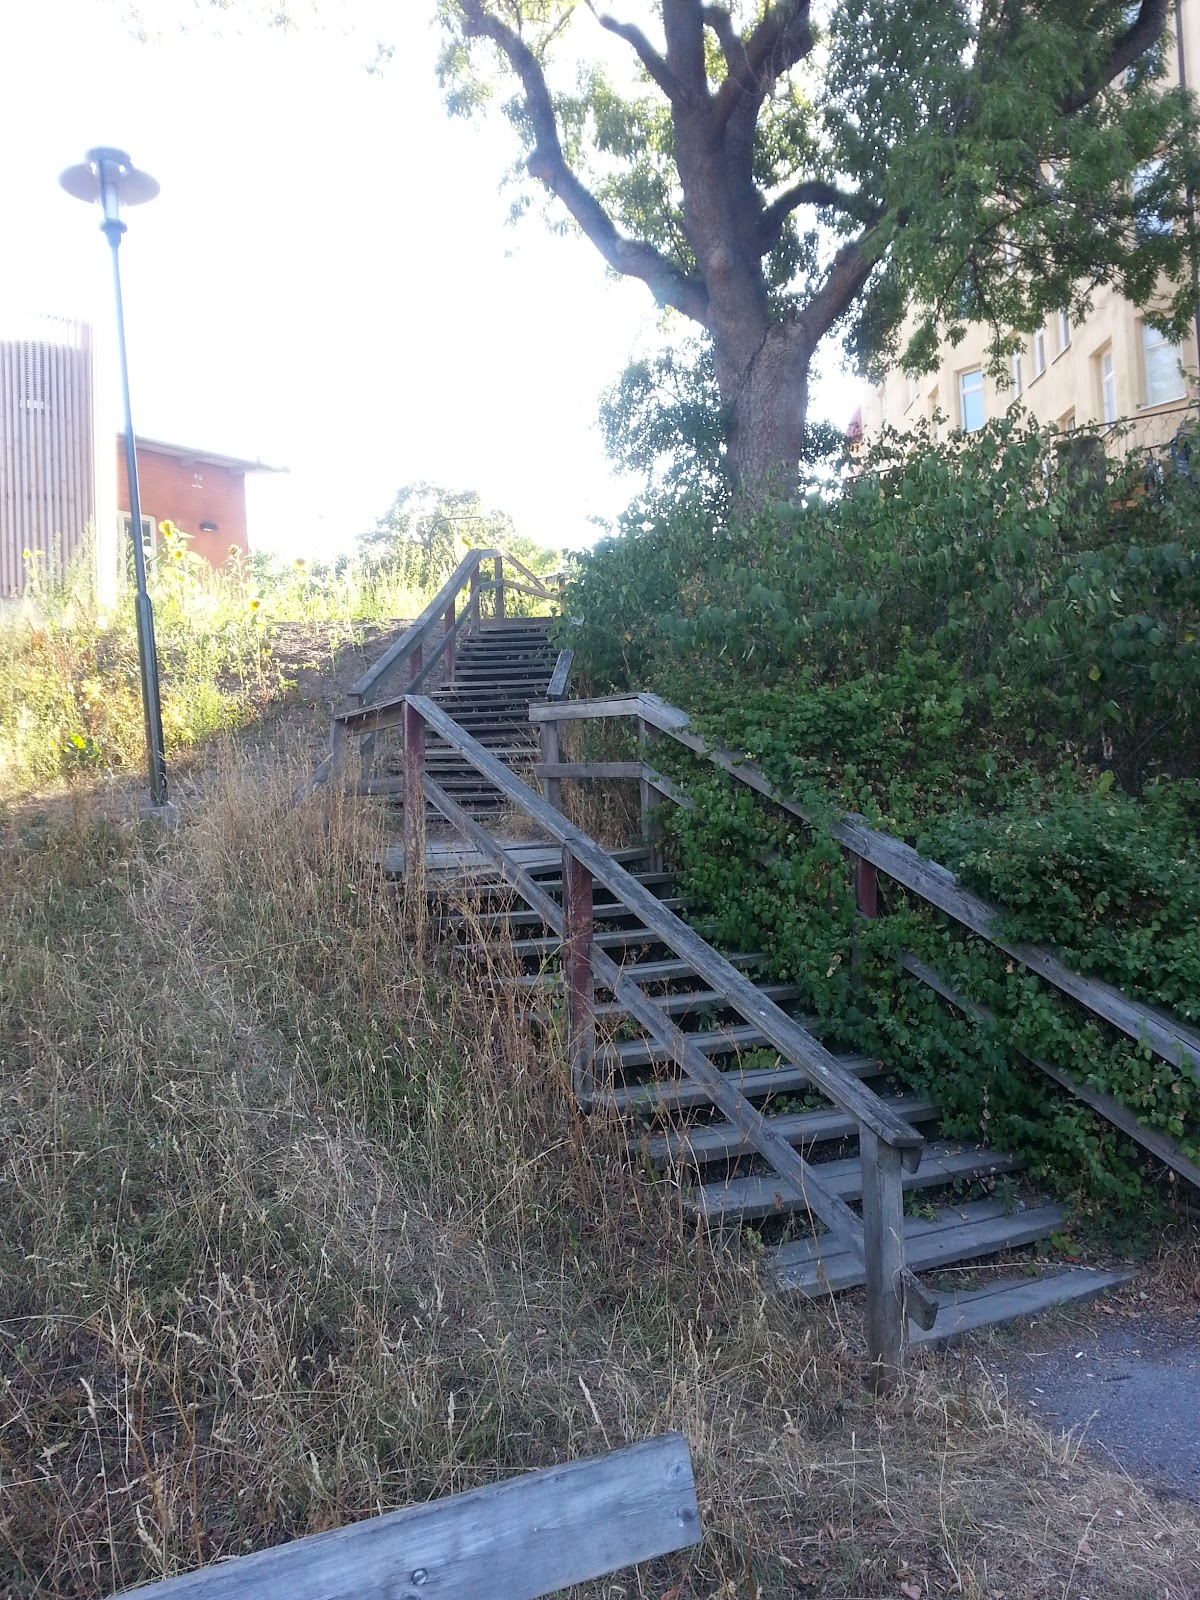 Image shows the stairs on the 'blue path' going up